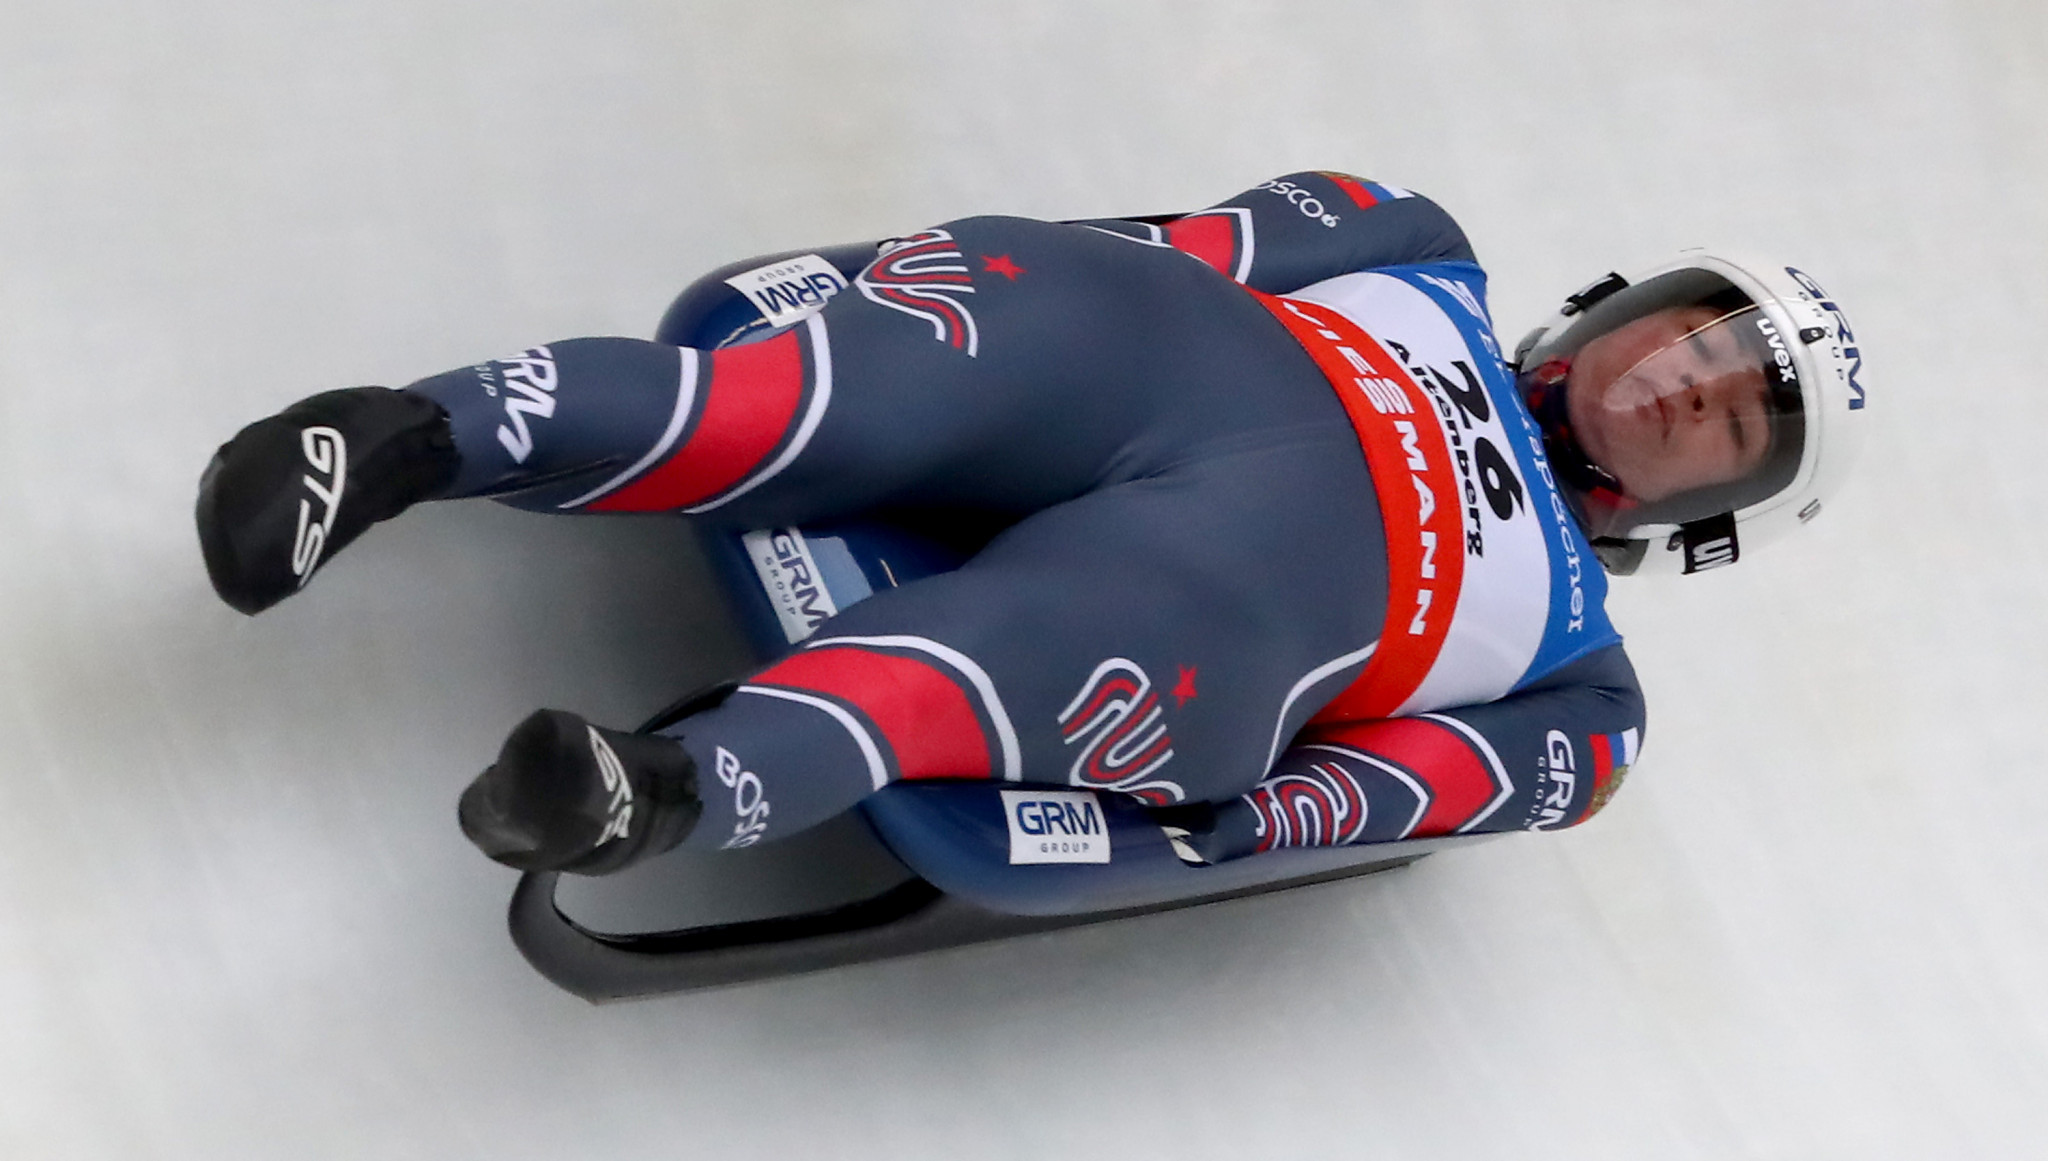 Ivanova clinches fifth European title at Luge World Cup in Sigulda